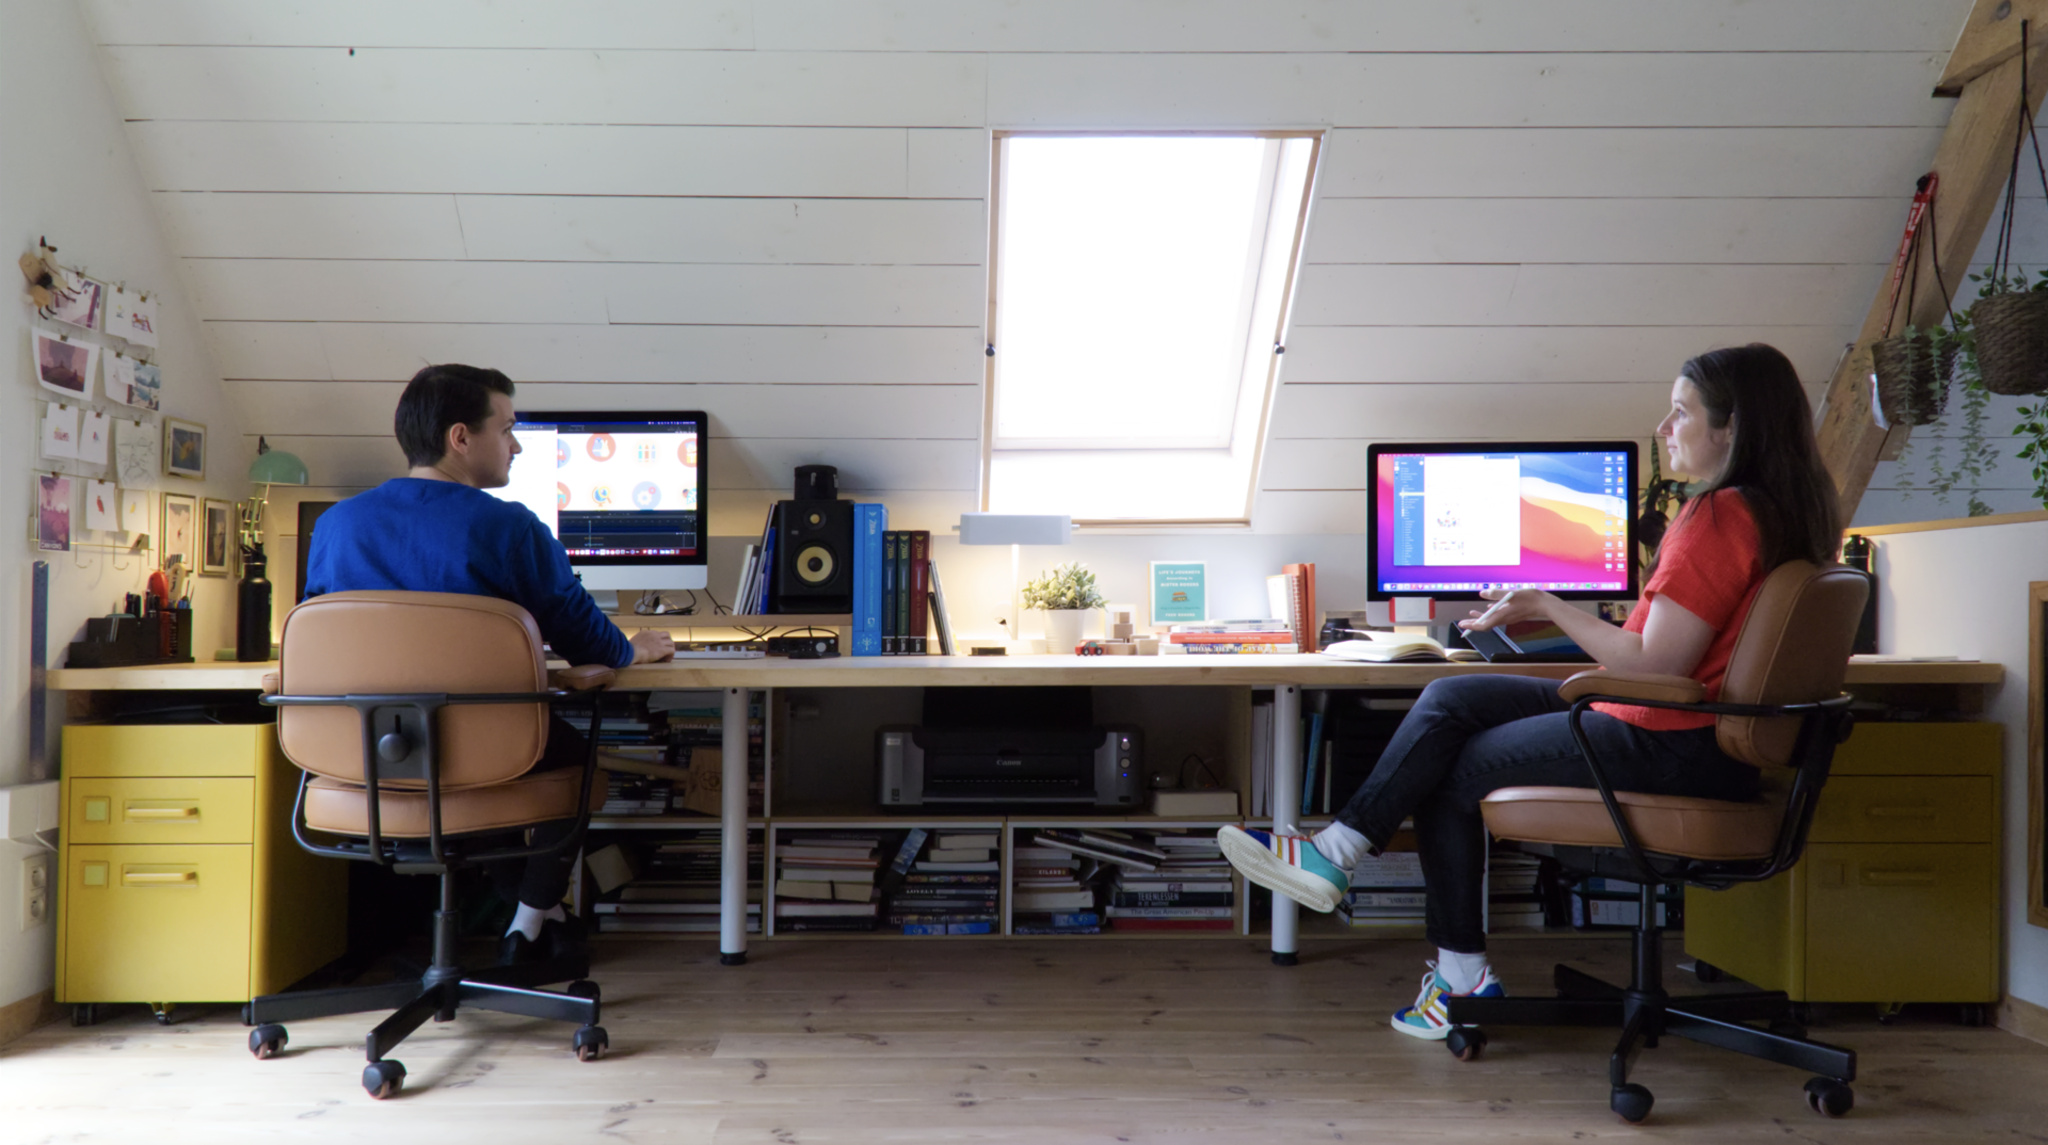 The Pok Pok Playroom couple in their home office